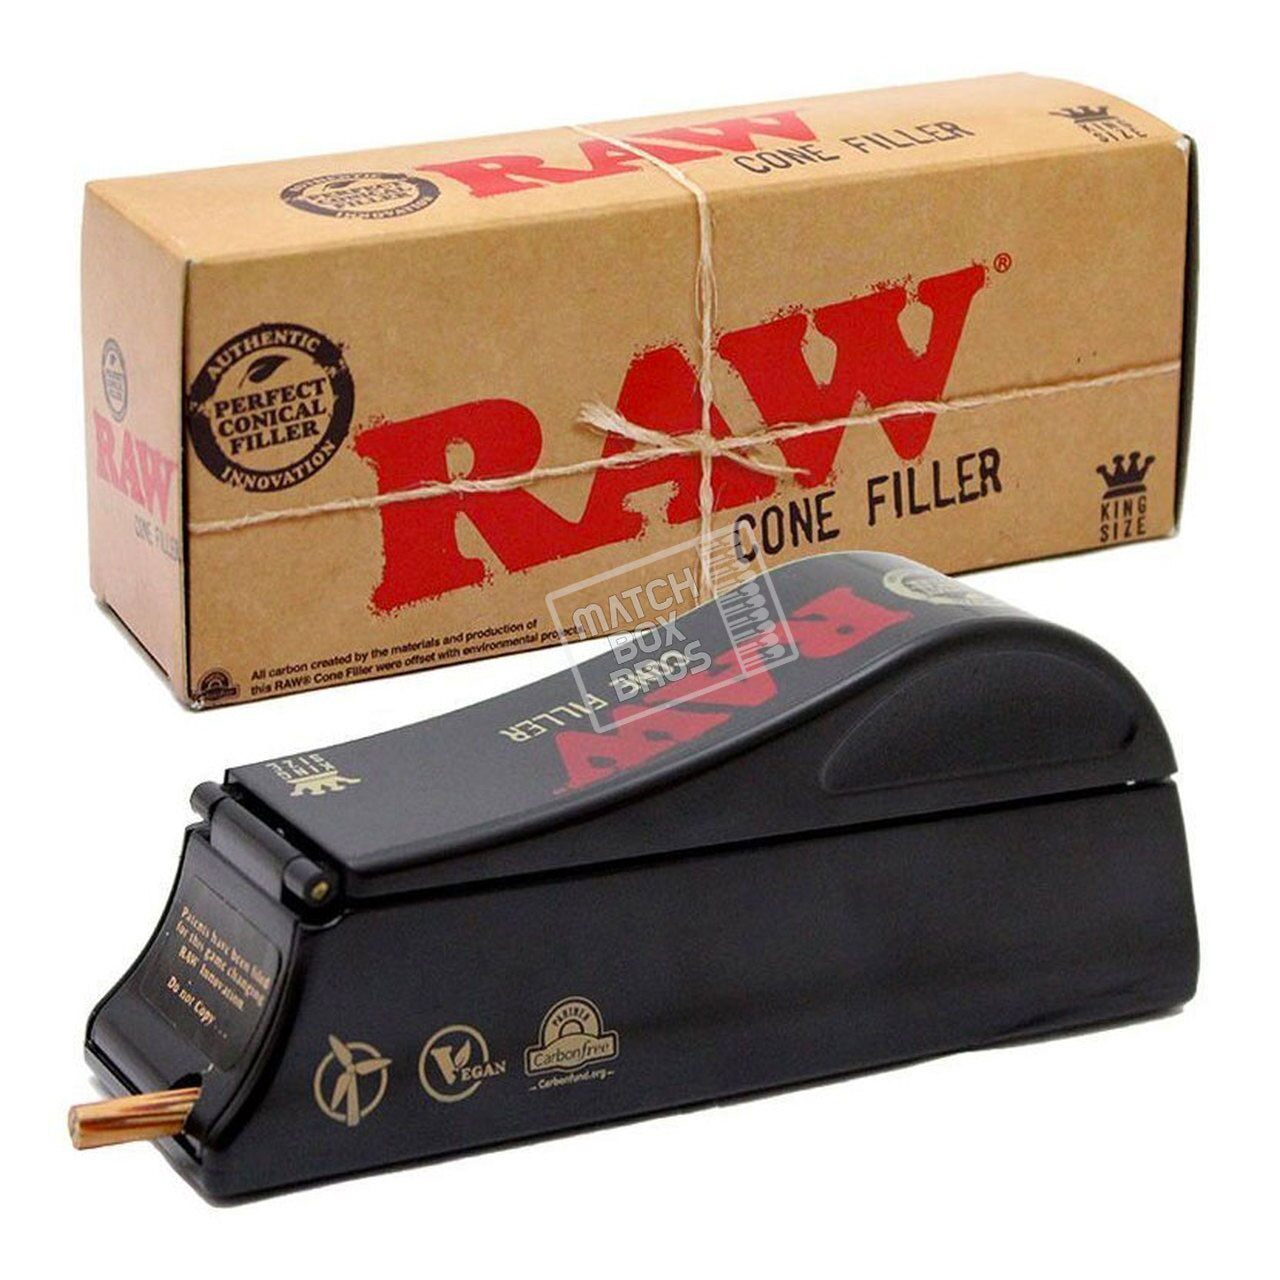 RAW Cone Filler King Size 02